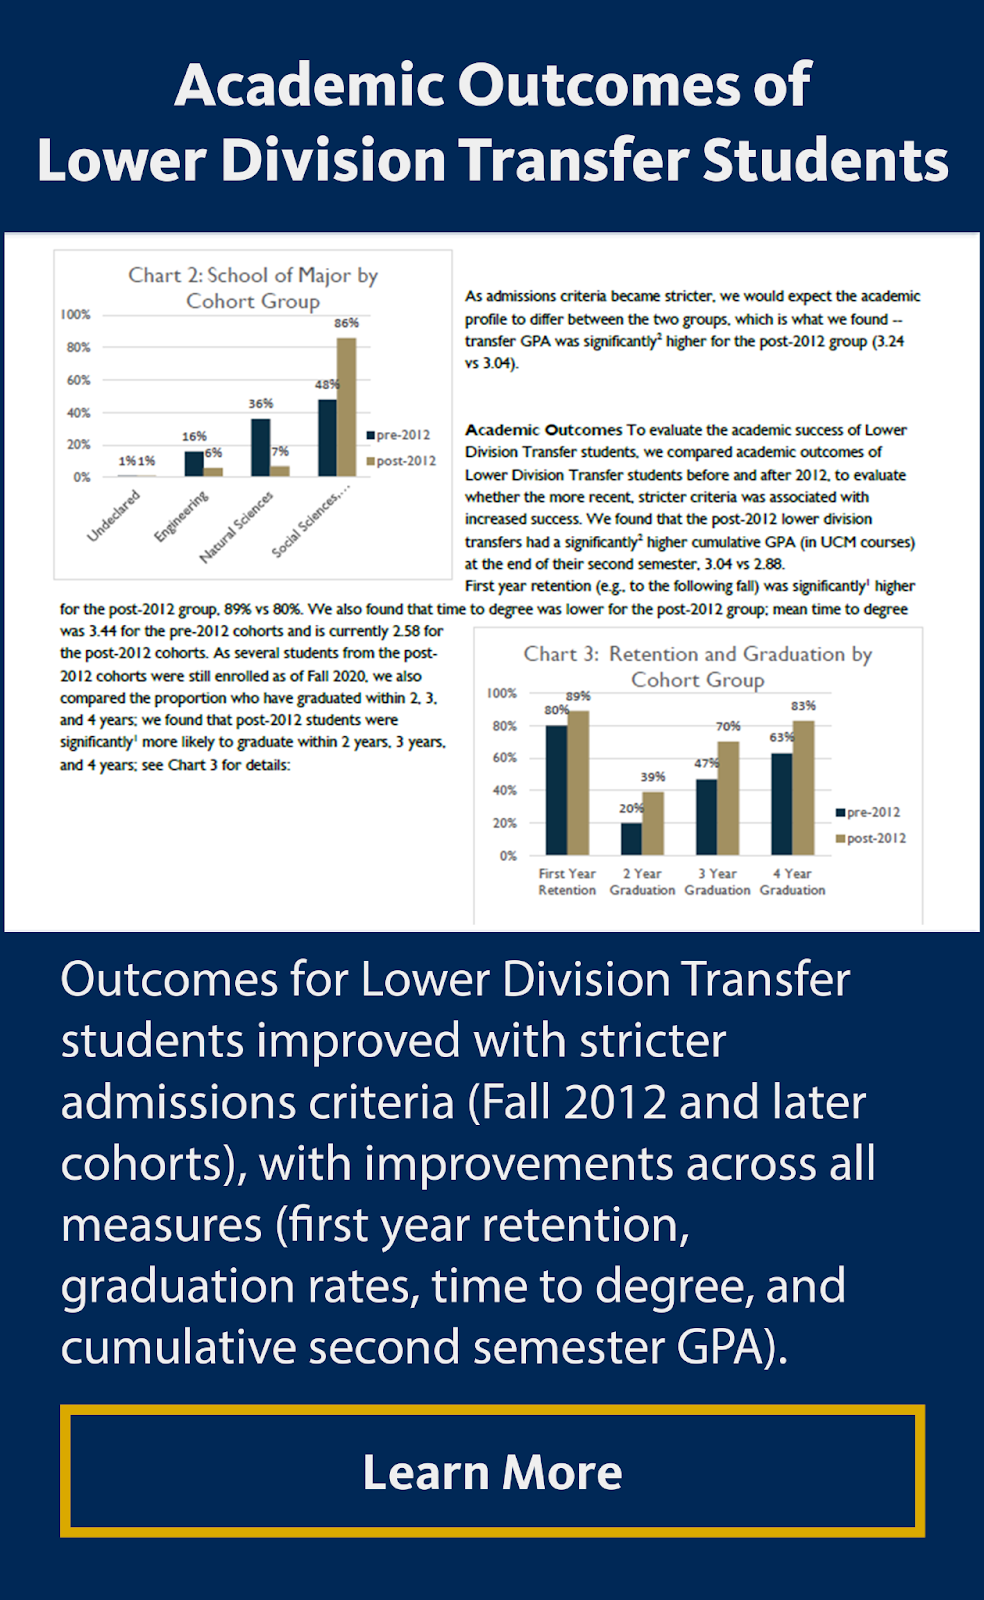 Academic Outcomes of Lower Division Transfer Students